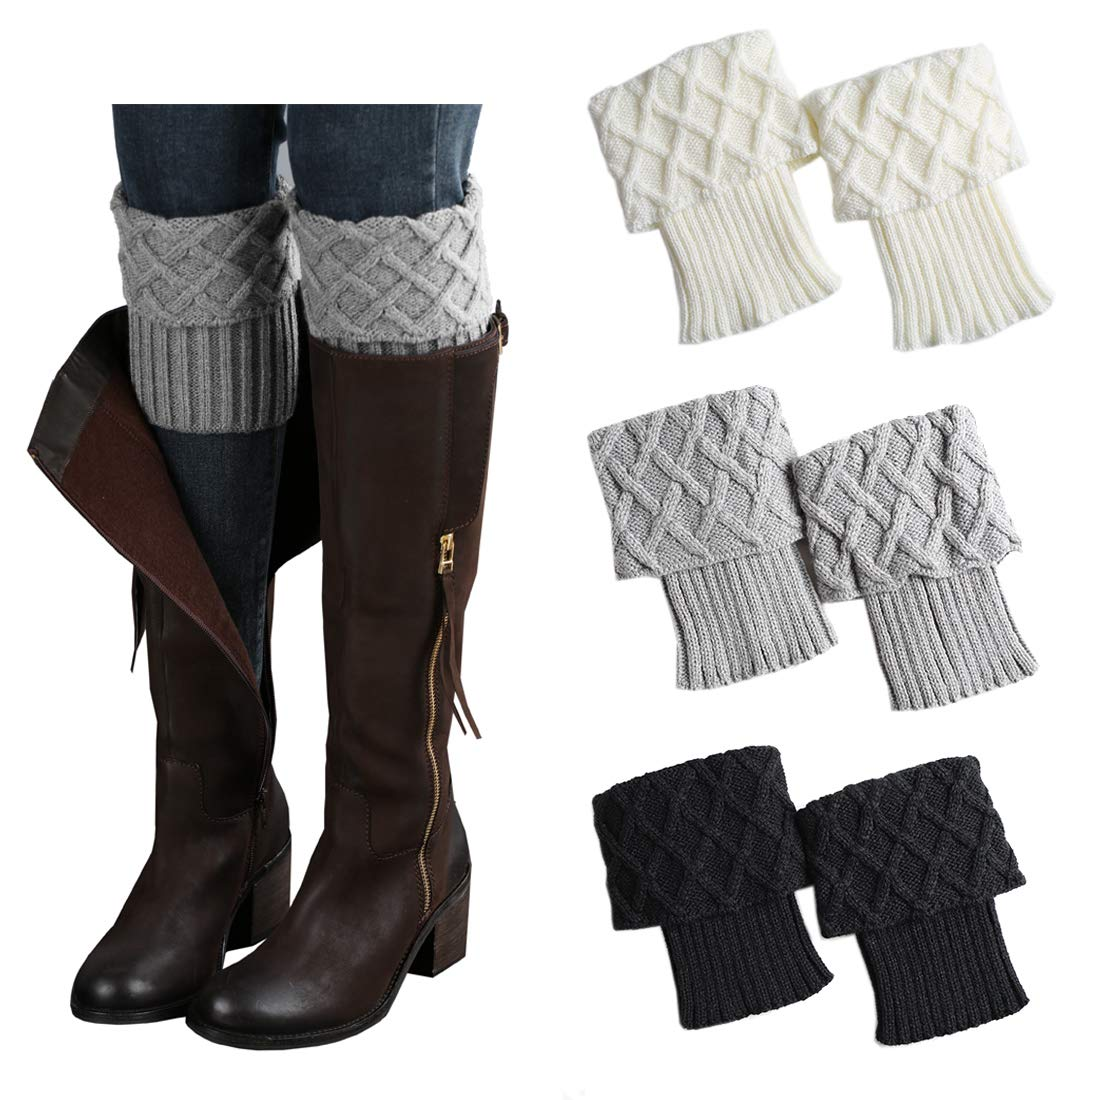 a0bacaeaae5 3 Pairs Women Boot Cuffs Leg Warmers Crochet Short Knitted Socks Warm  Toppers Winter FAYBOX at Amazon Women s Clothing store